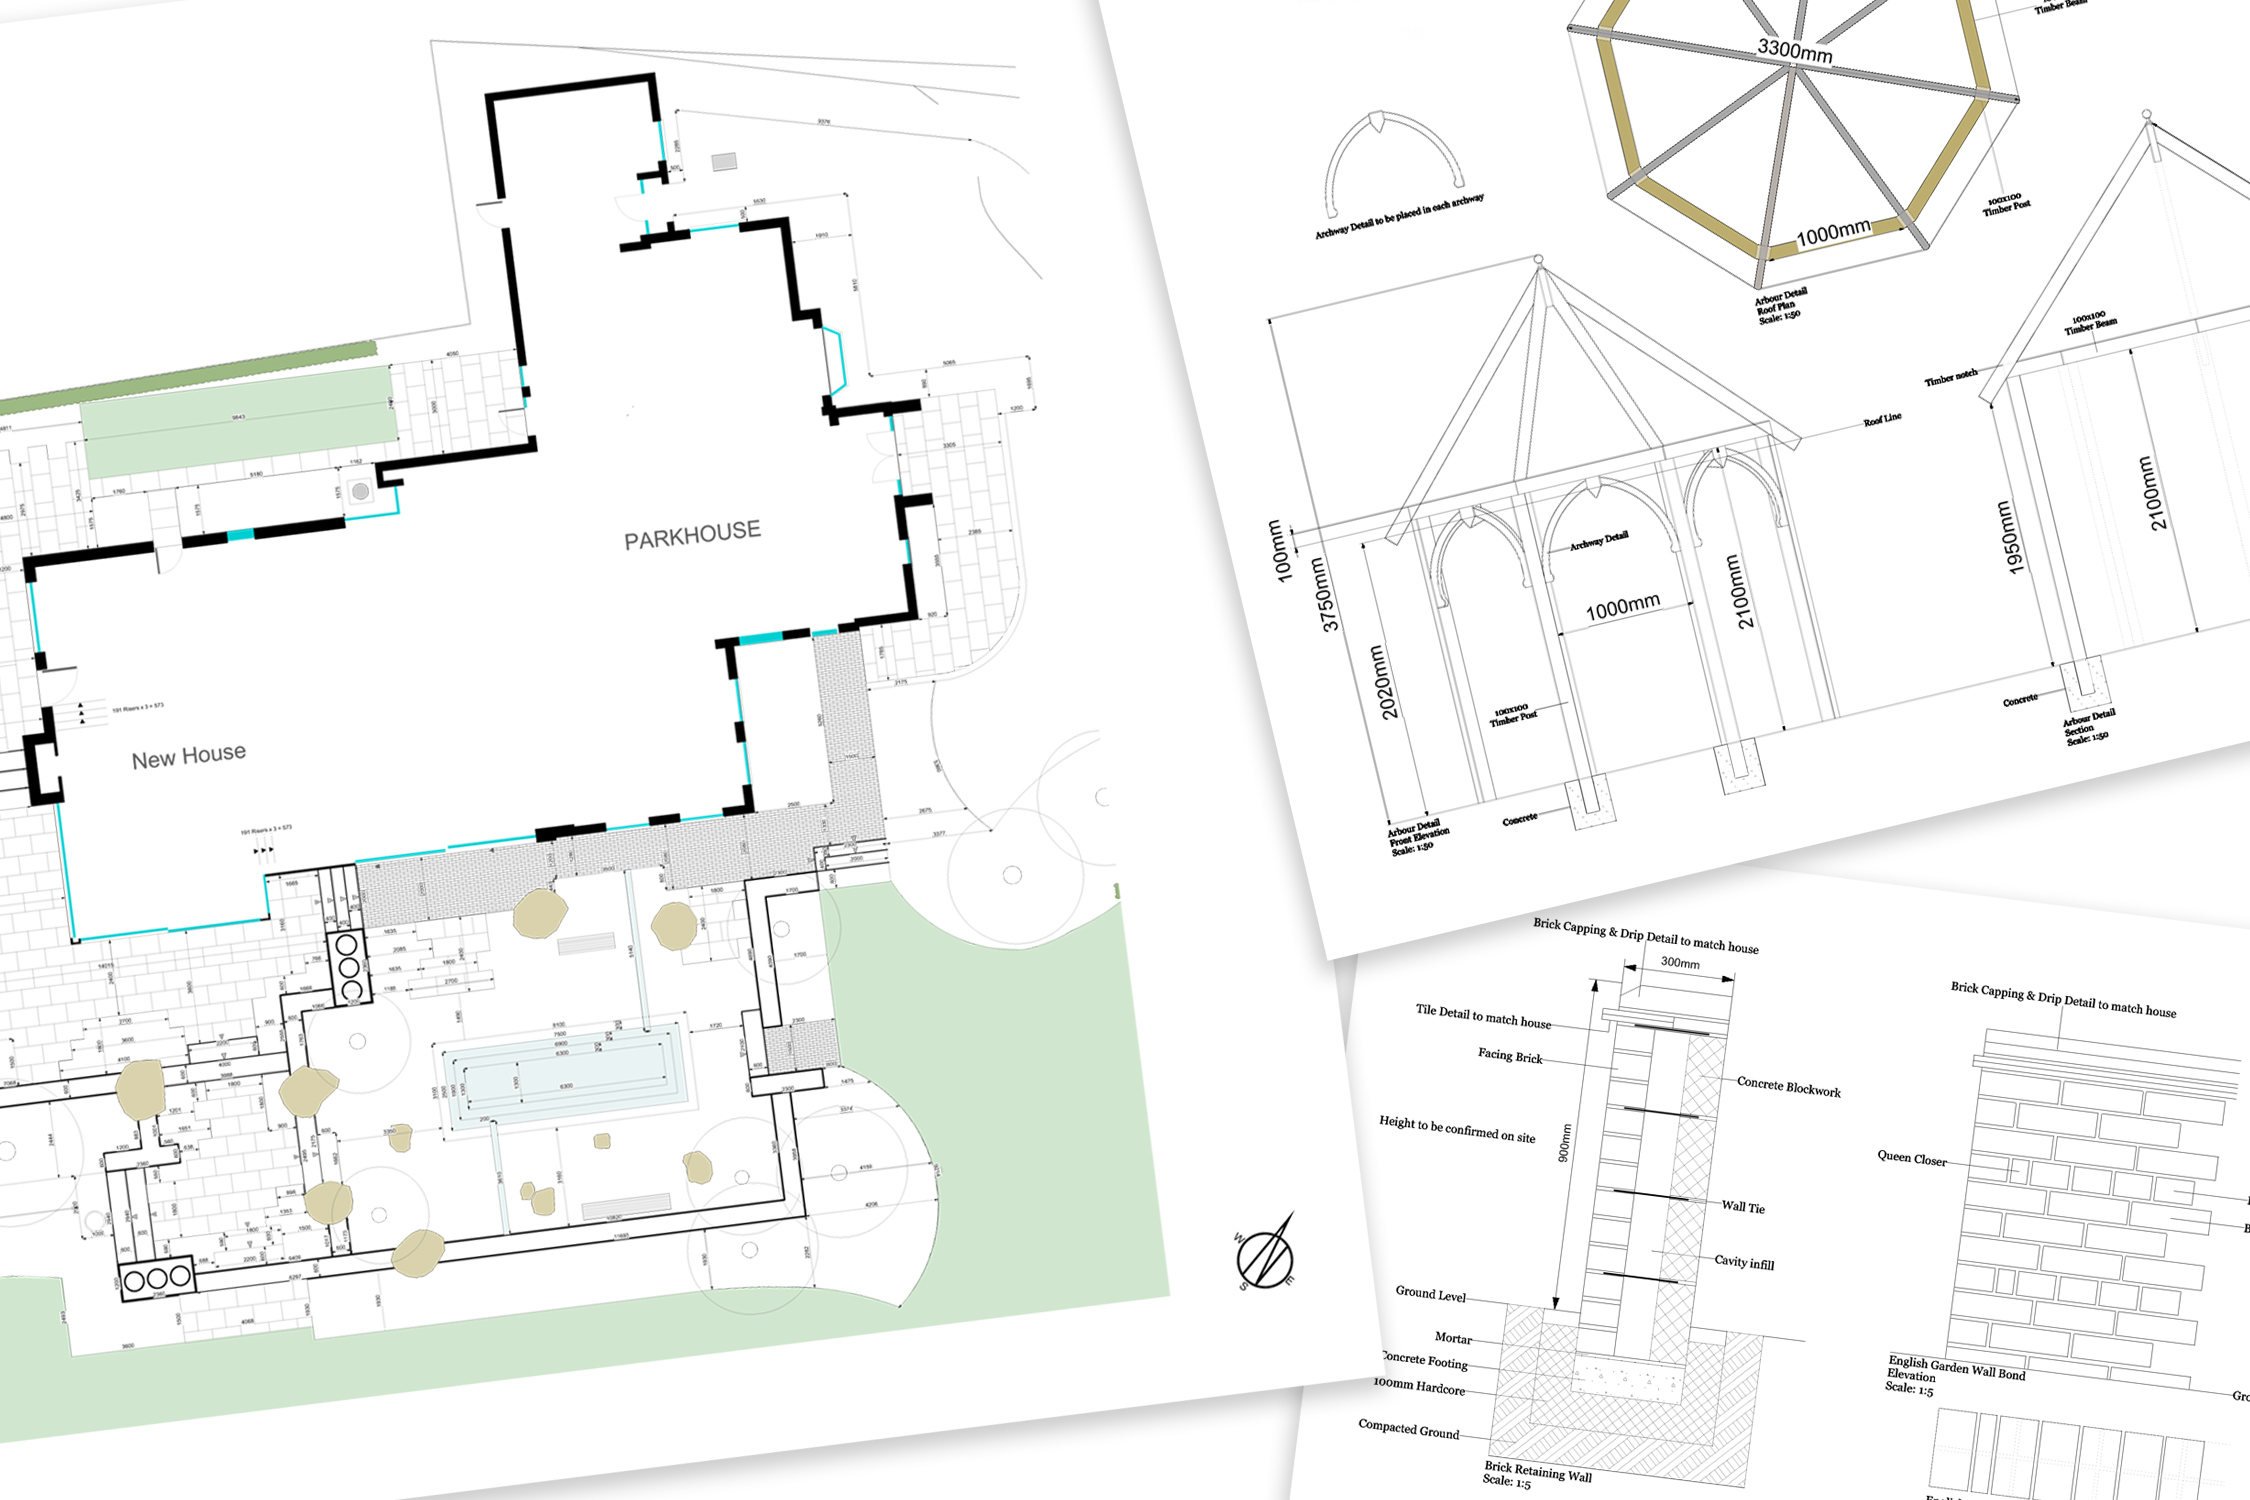 Specification drawings by Adam Frost and his Team